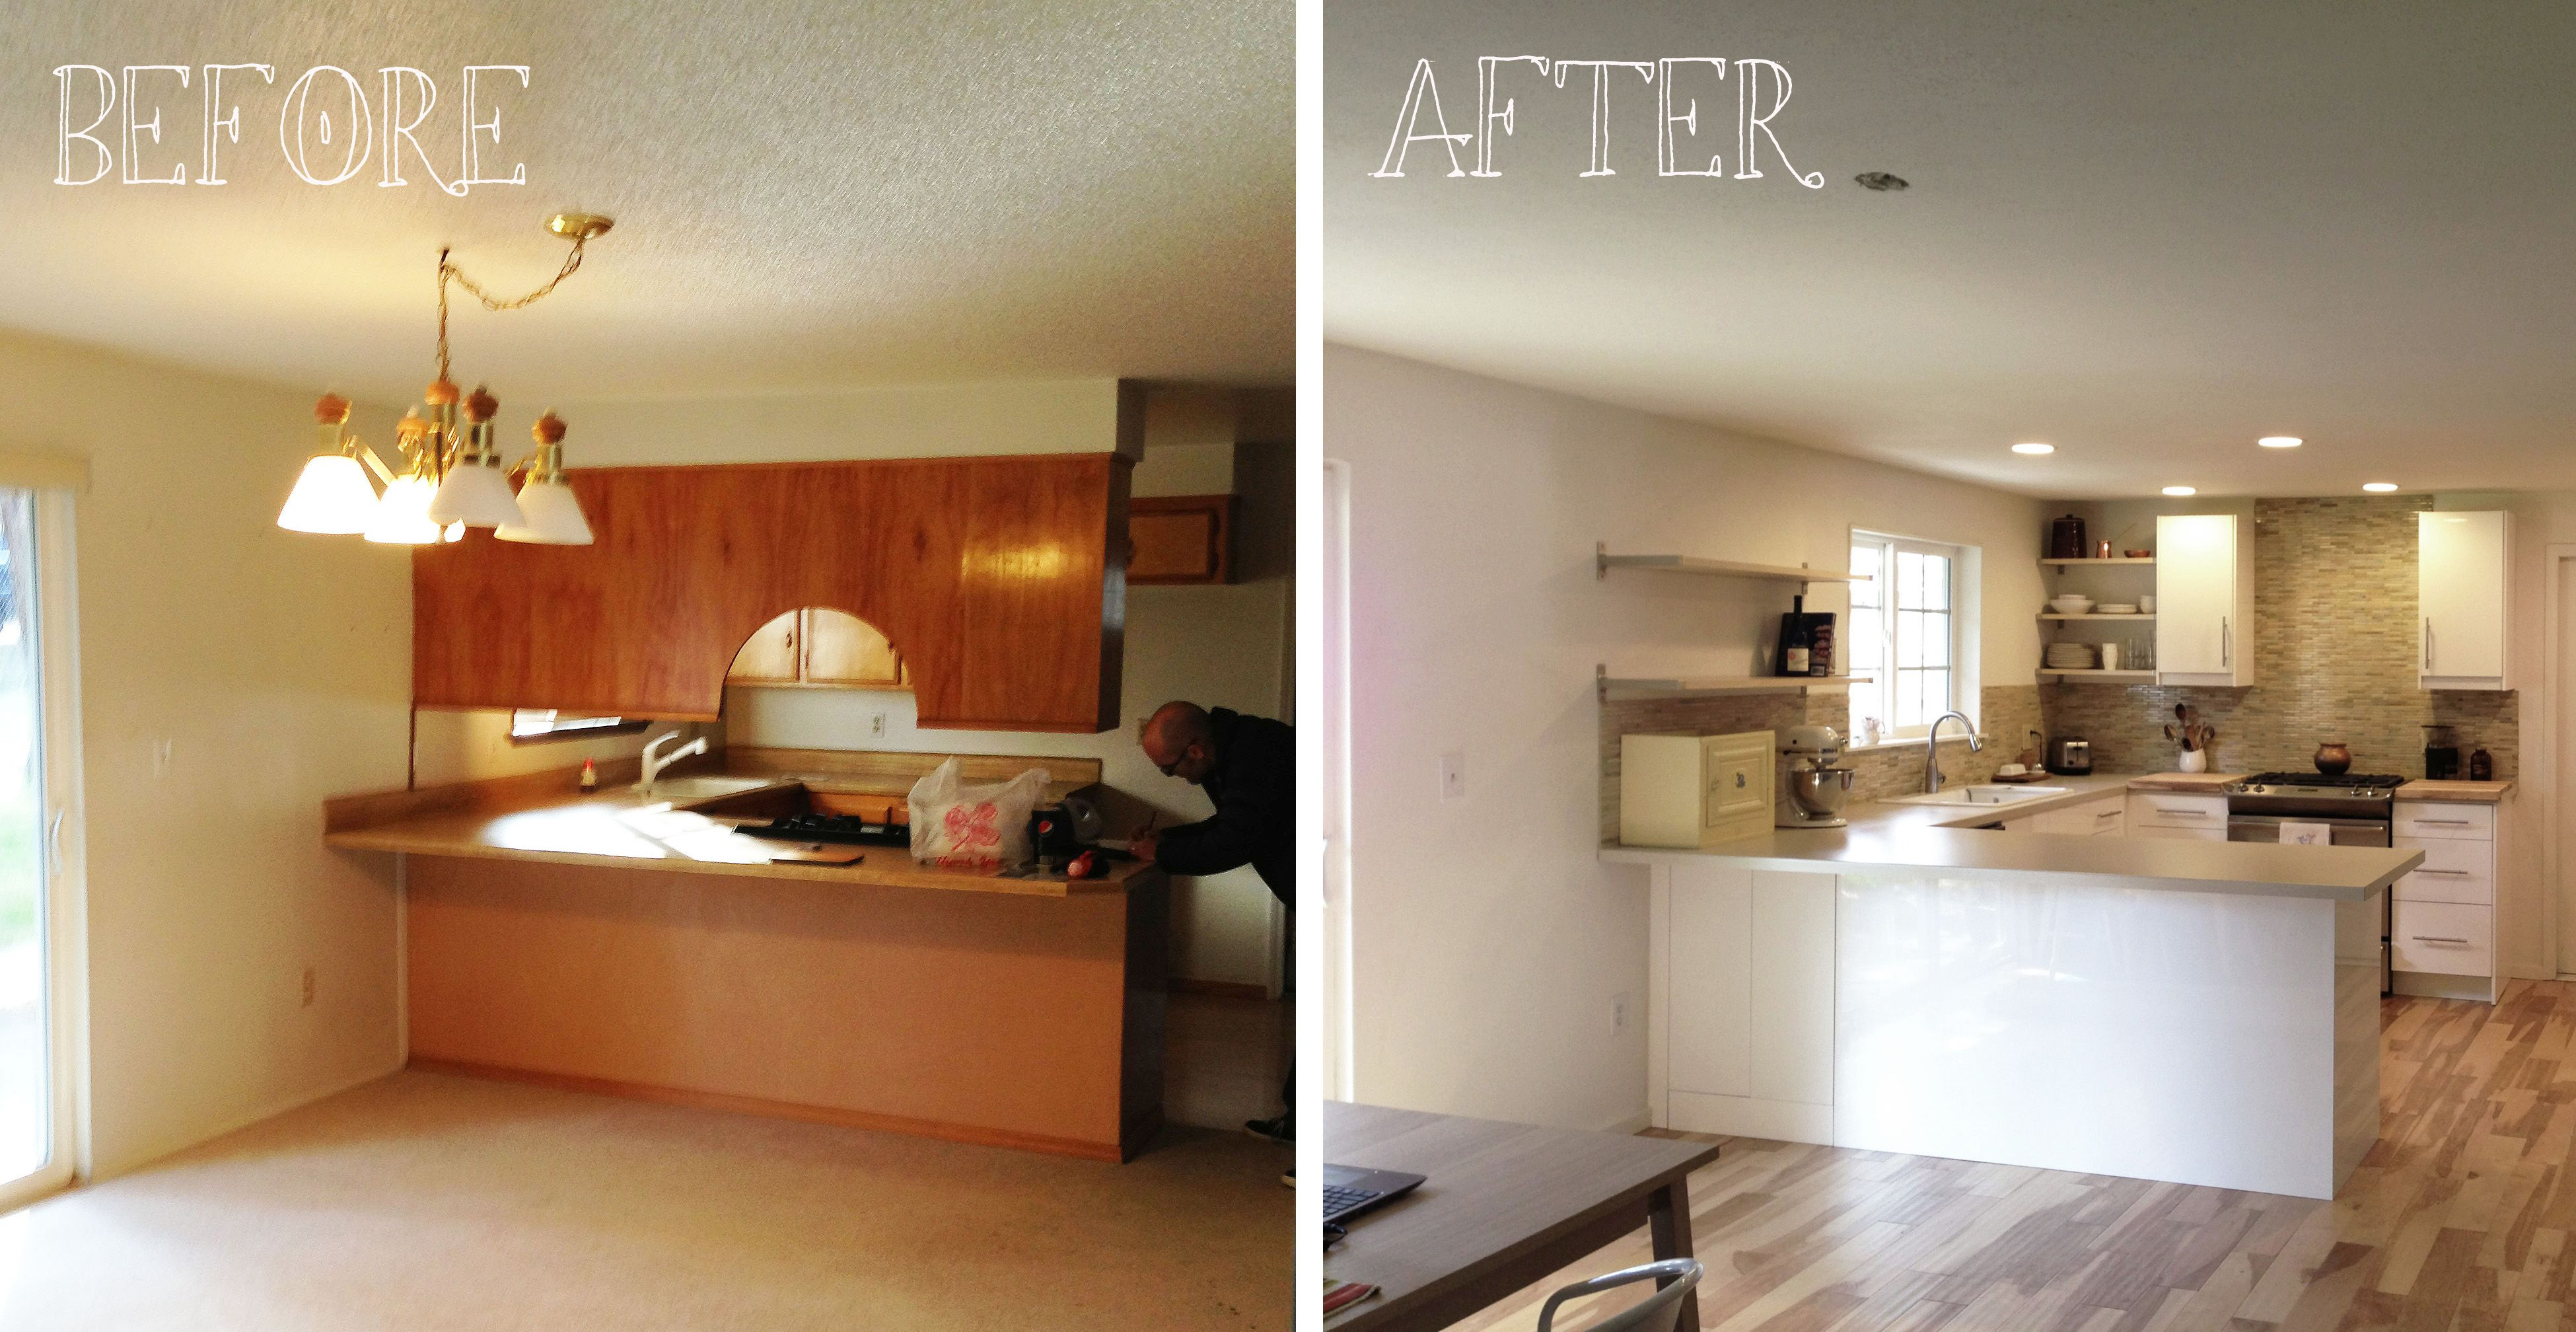 Kitchen Remodel Before And After Representation Of Small Kitchen Remodel Before And After For